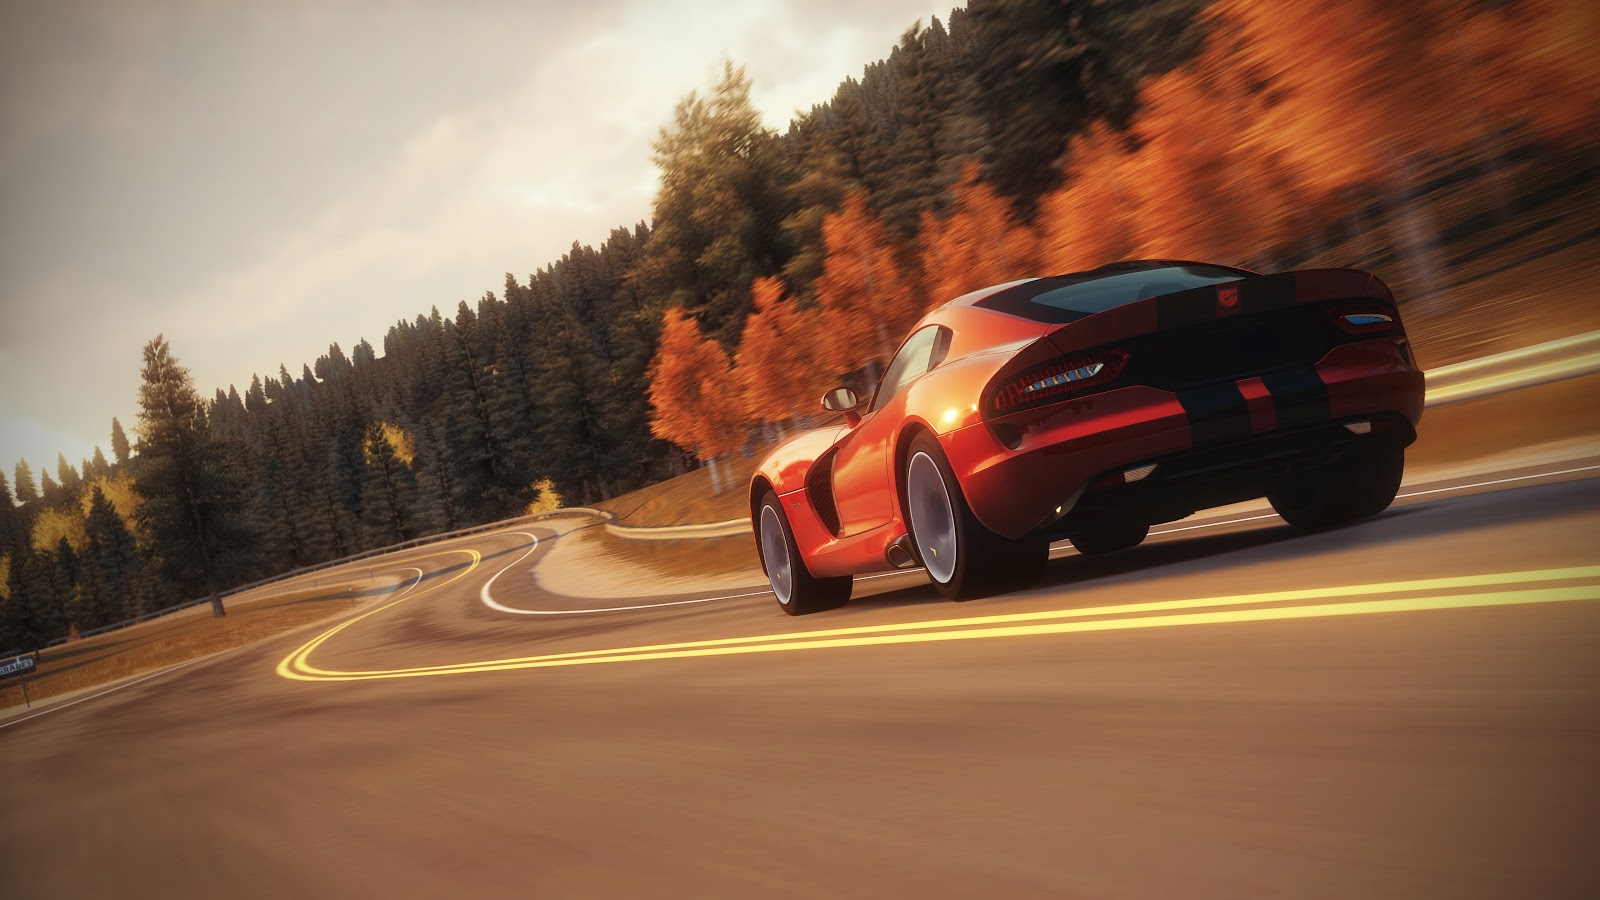 Forza Horizon HD & Widescreen Wallpaper 0.945987239712423